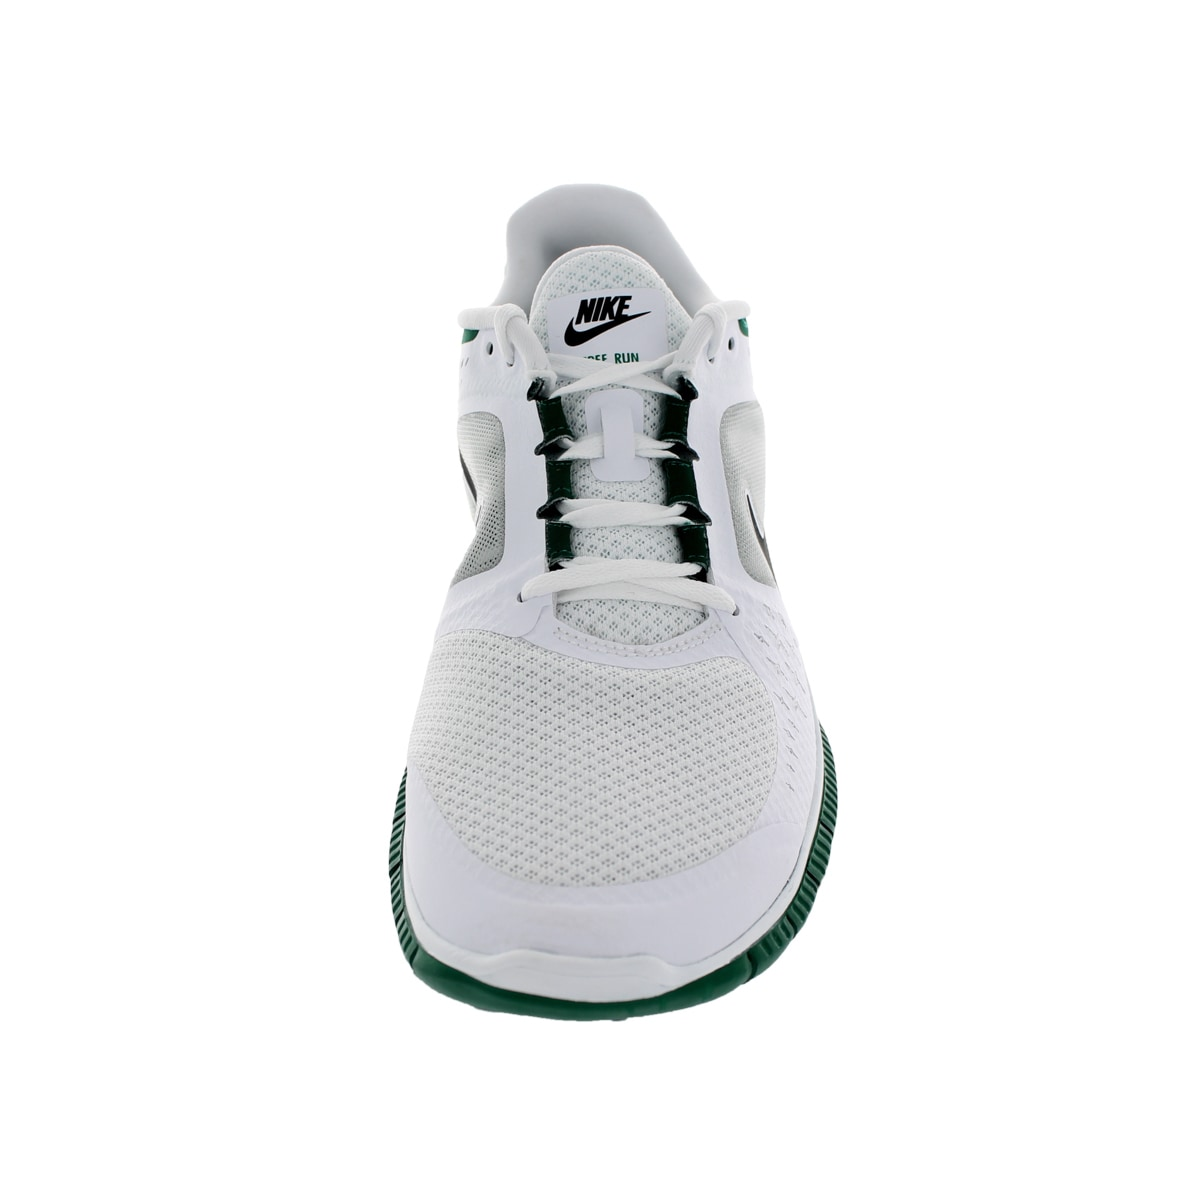 a78860304f8f Shop Nike Men s Free Run 3 Nsw White Black Legion Pine Running Shoe - Free  Shipping Today - Overstock - 12330840